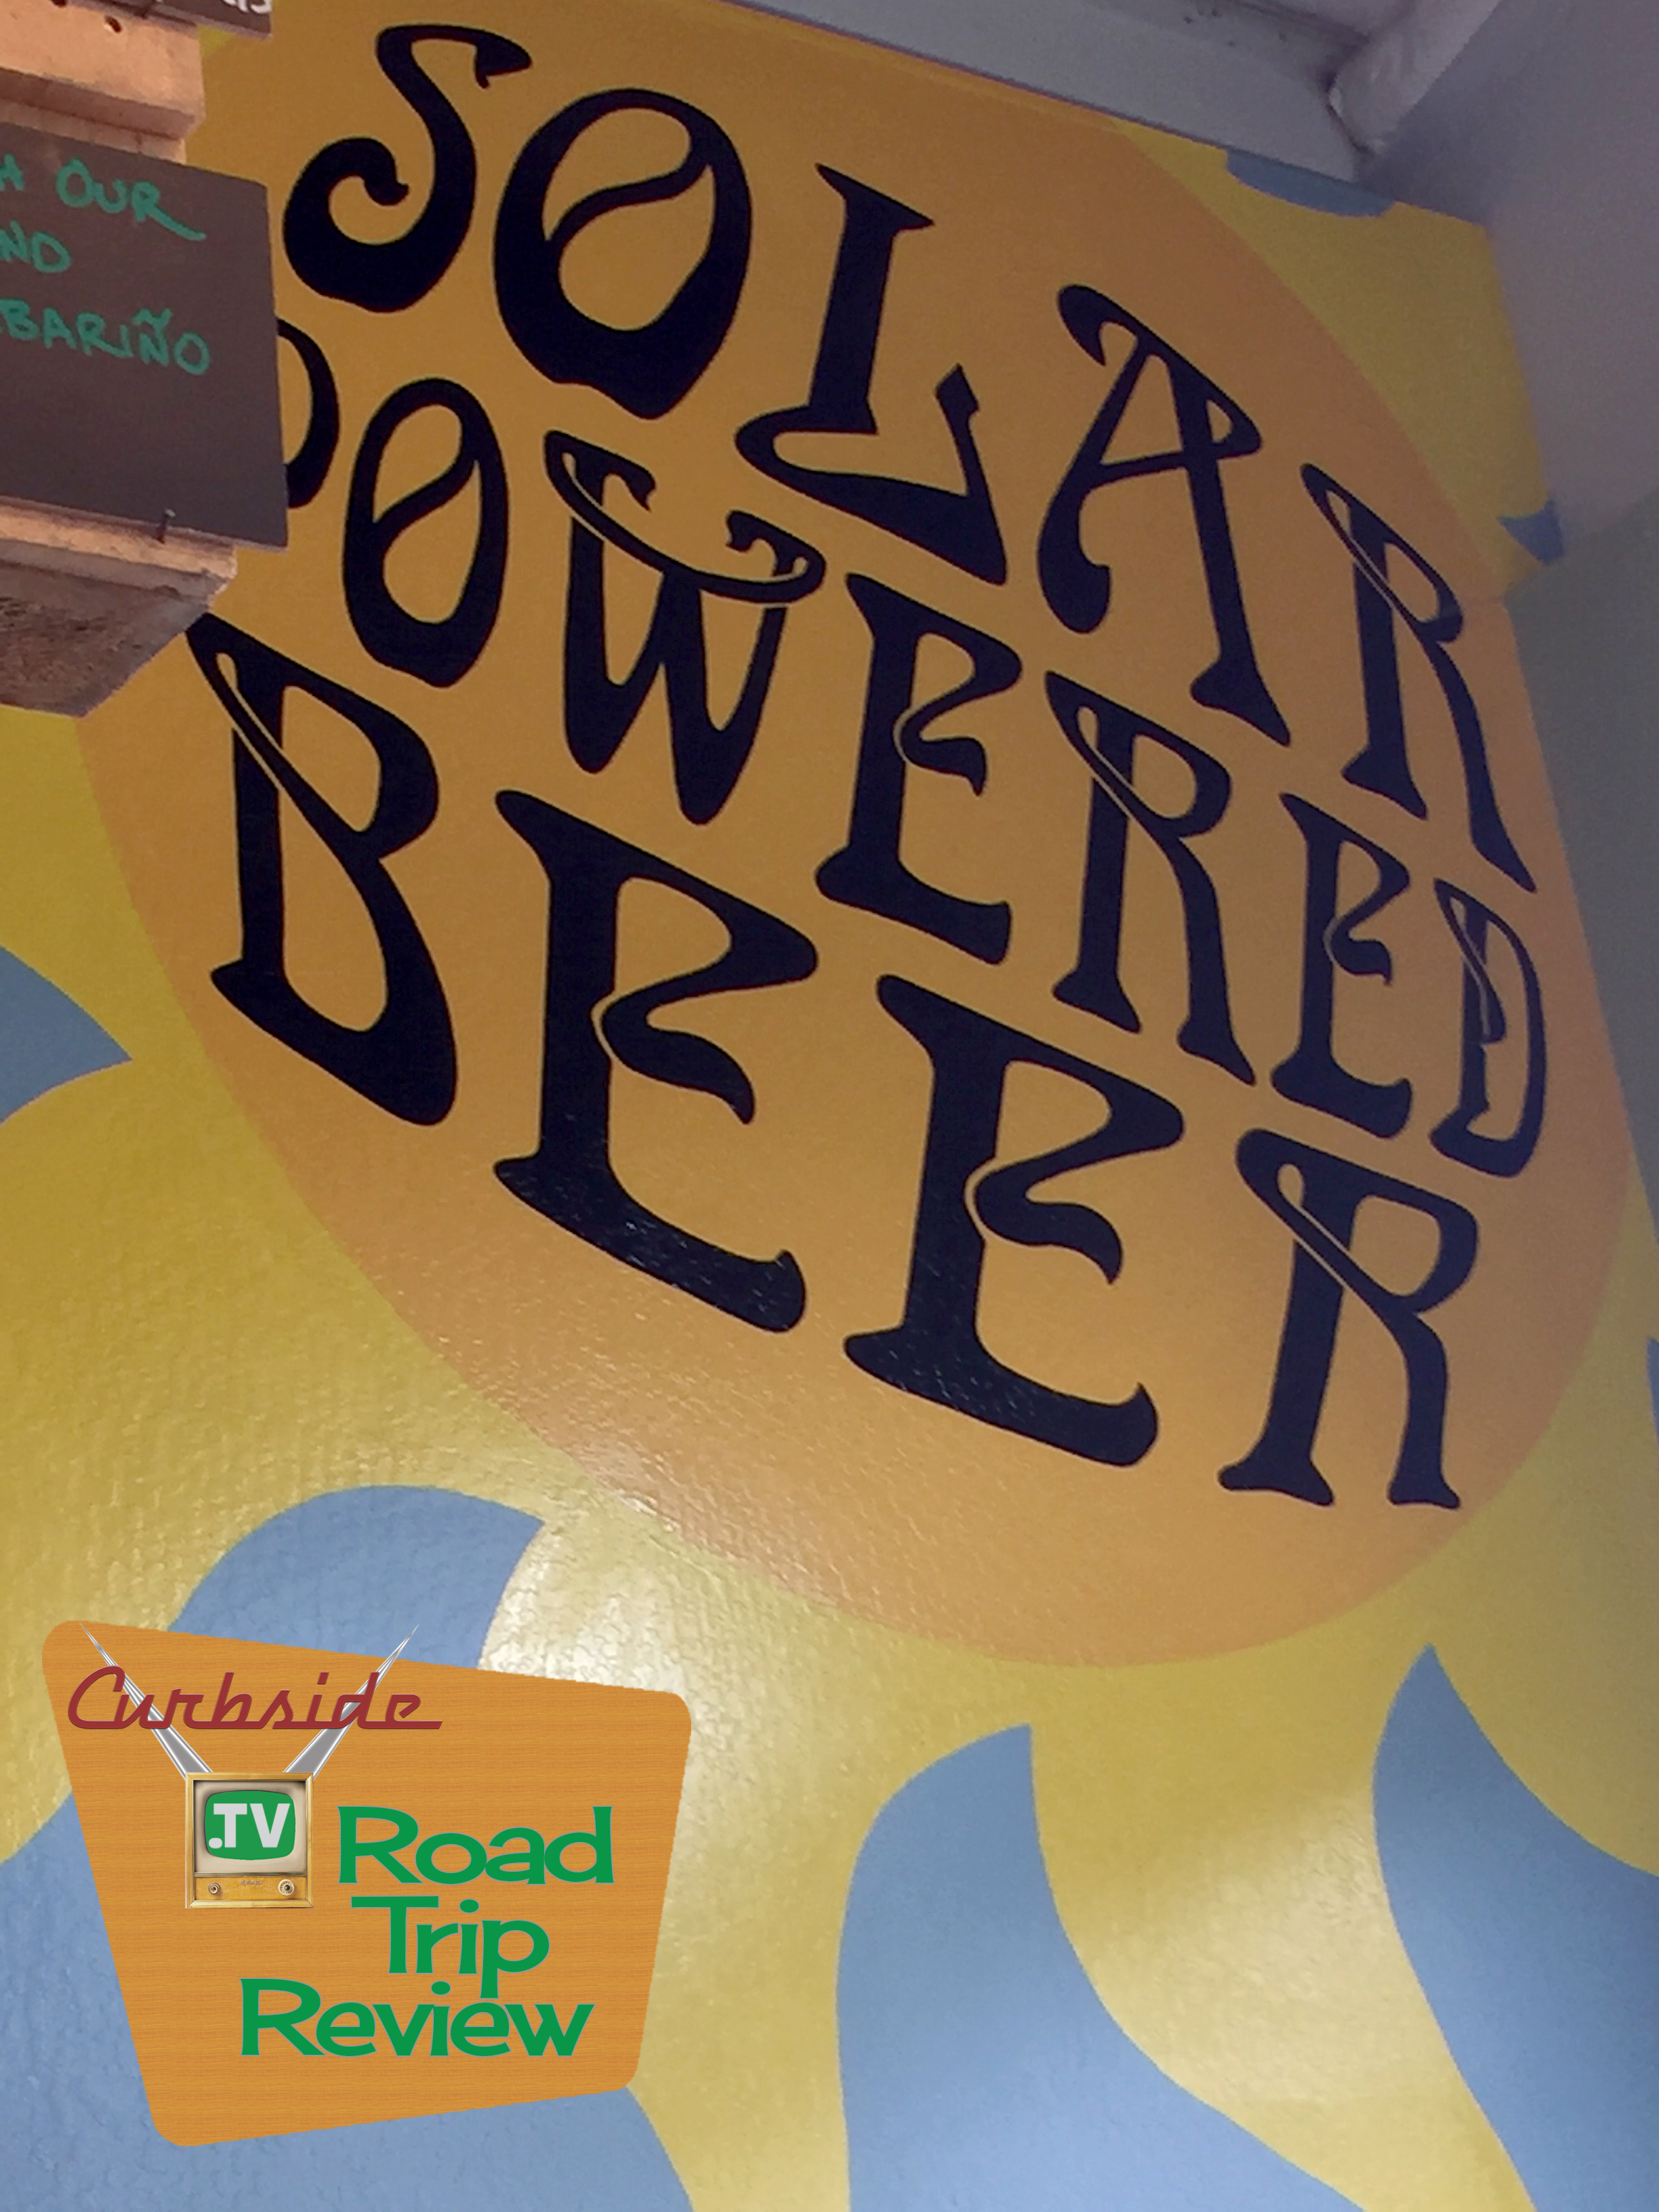 Solar Powered brewery - Anderson Valley Brewing Company